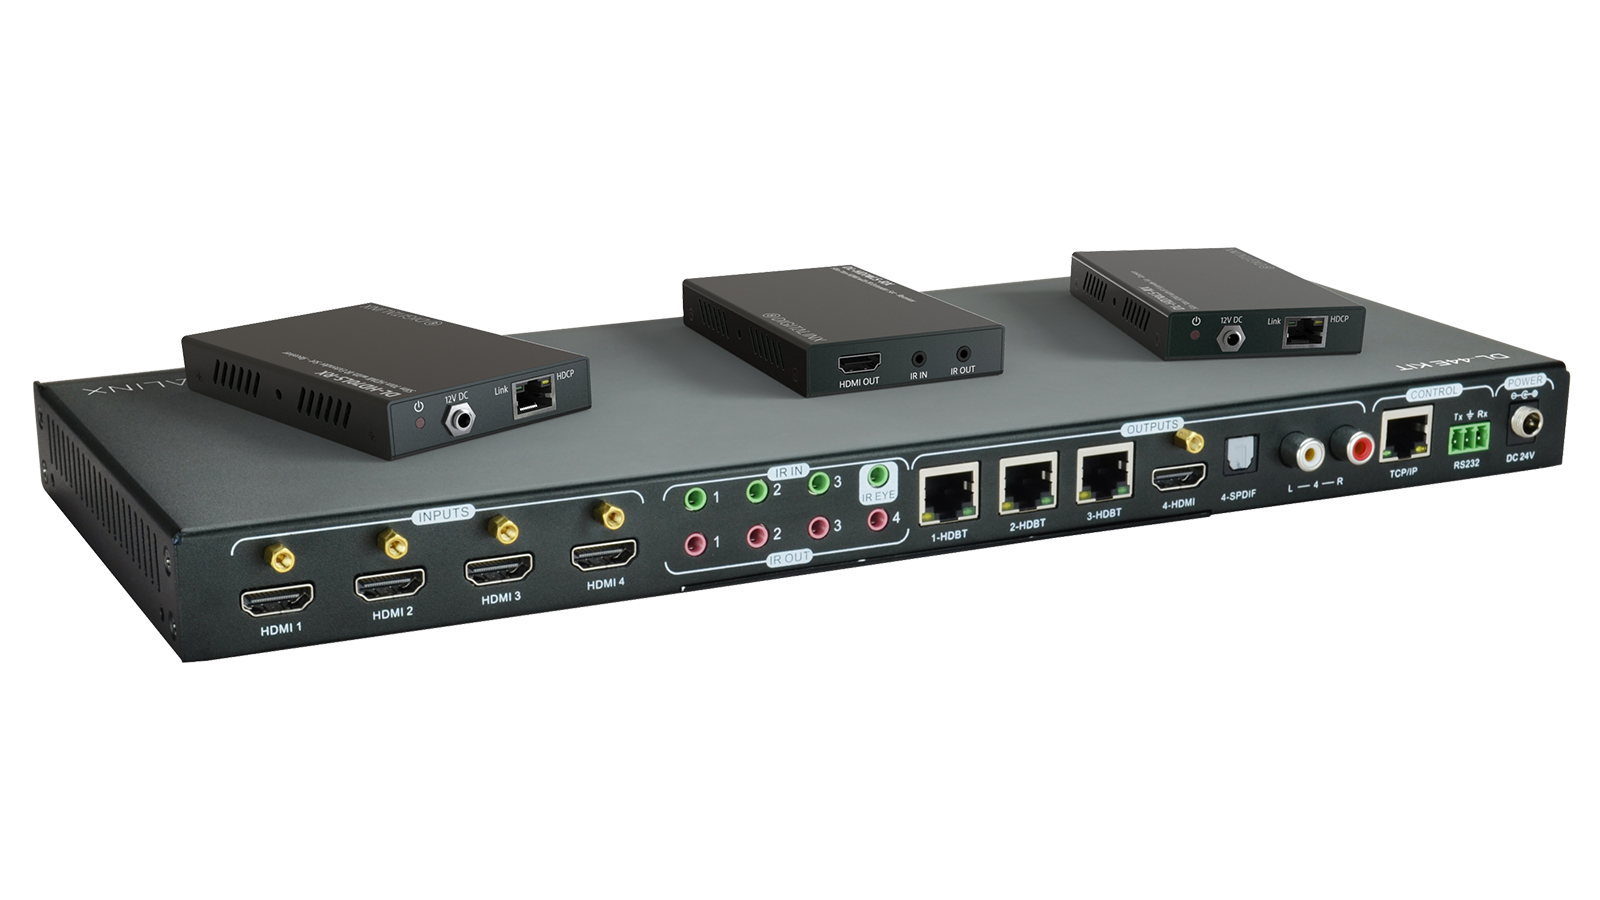 Dl 44e Kit 4x4 4k Hdbt Matrix Switch Kitted With 3 Hdbaset Poe Image Of Home Command Center Structured Wiring Panel 1x8 Coax And Receivers